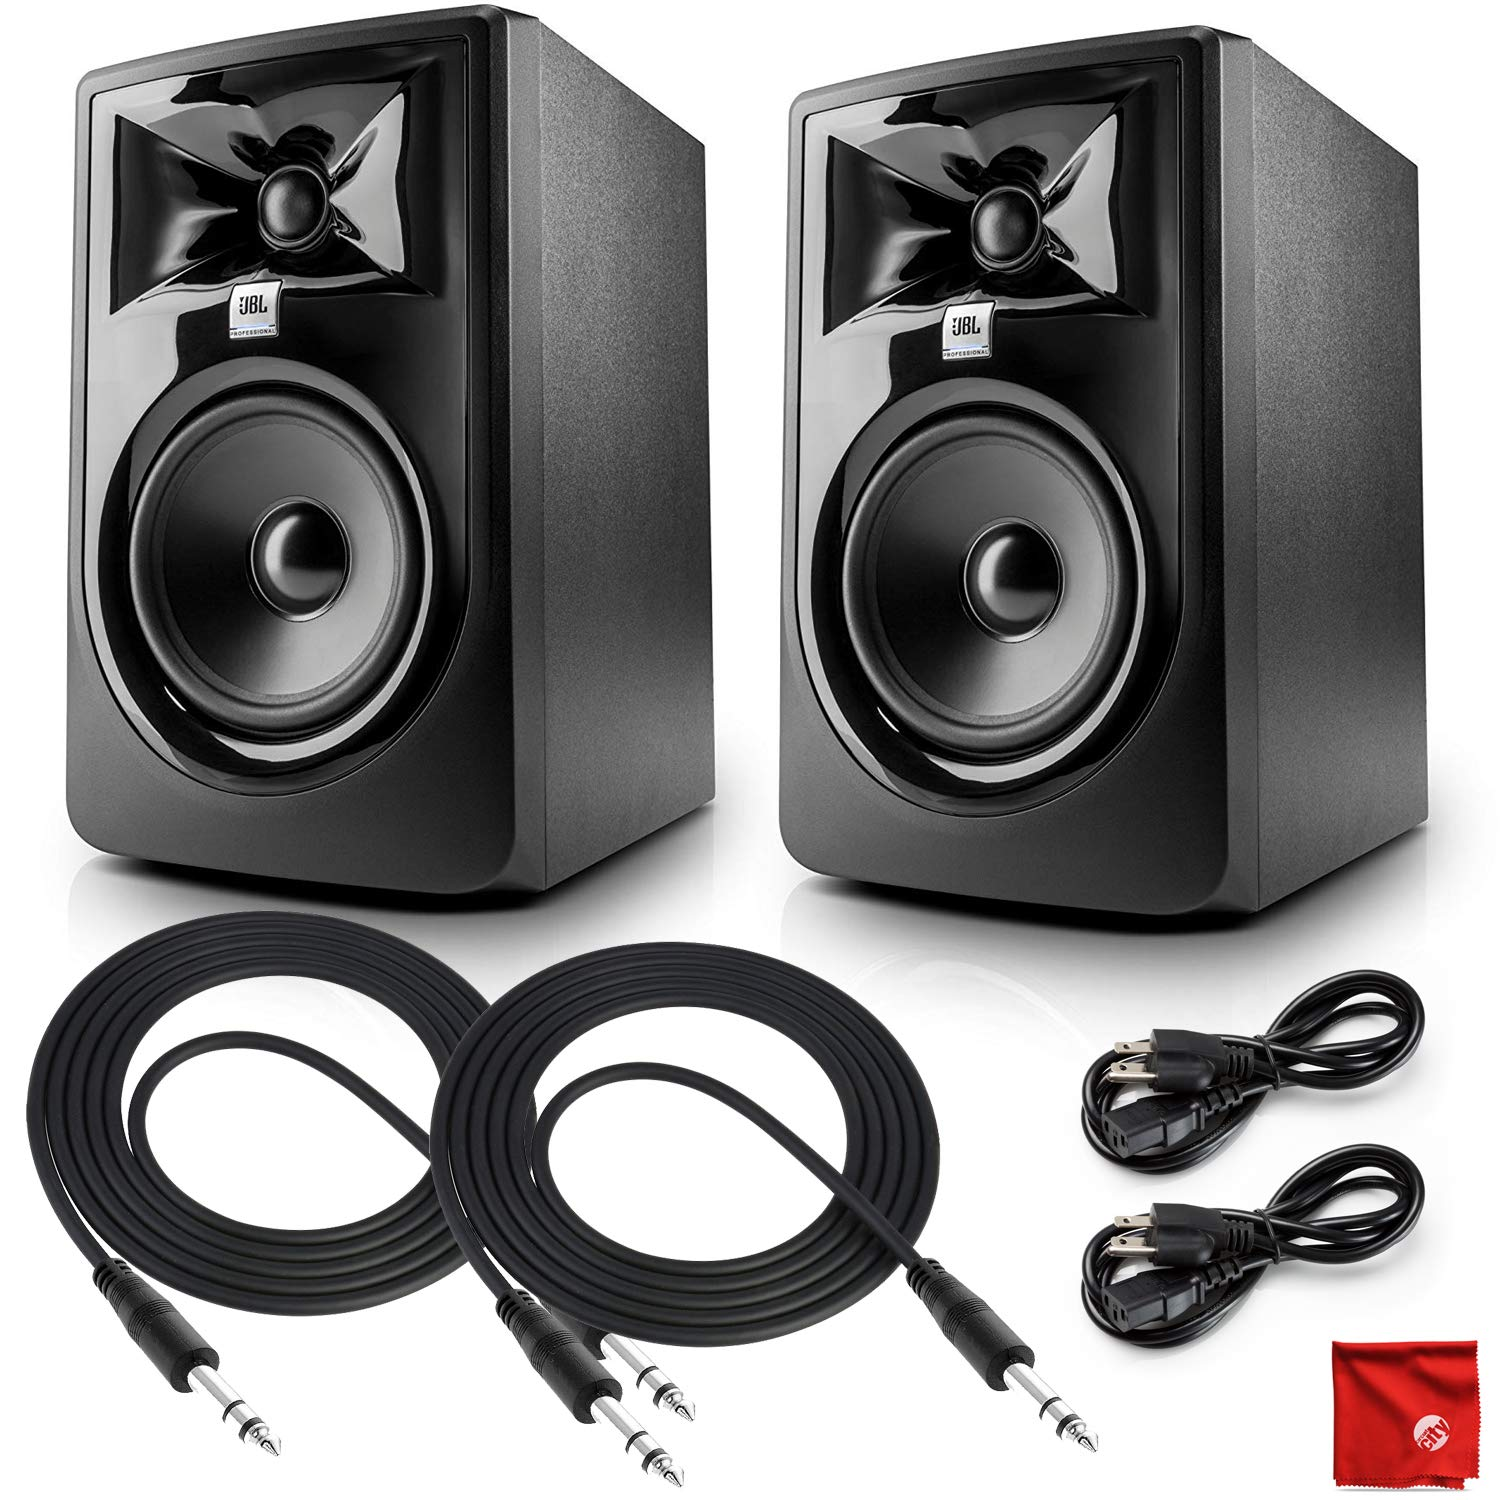 JBL 305P MKII Professional Twin Monitor Bundle with Two TRS Cables and Microfiber Cleaning Cloth